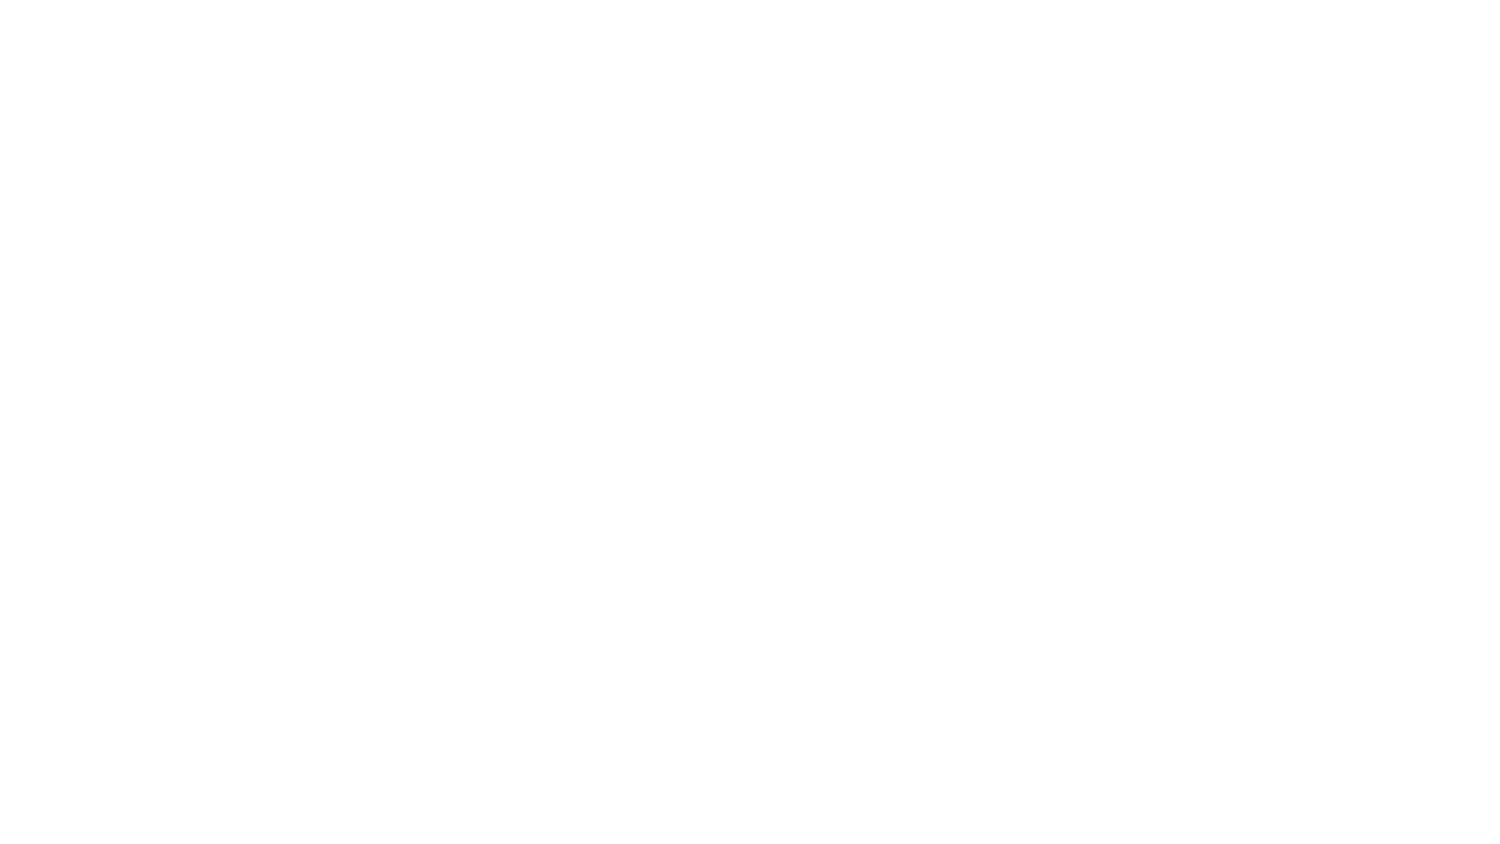 South Central Industries